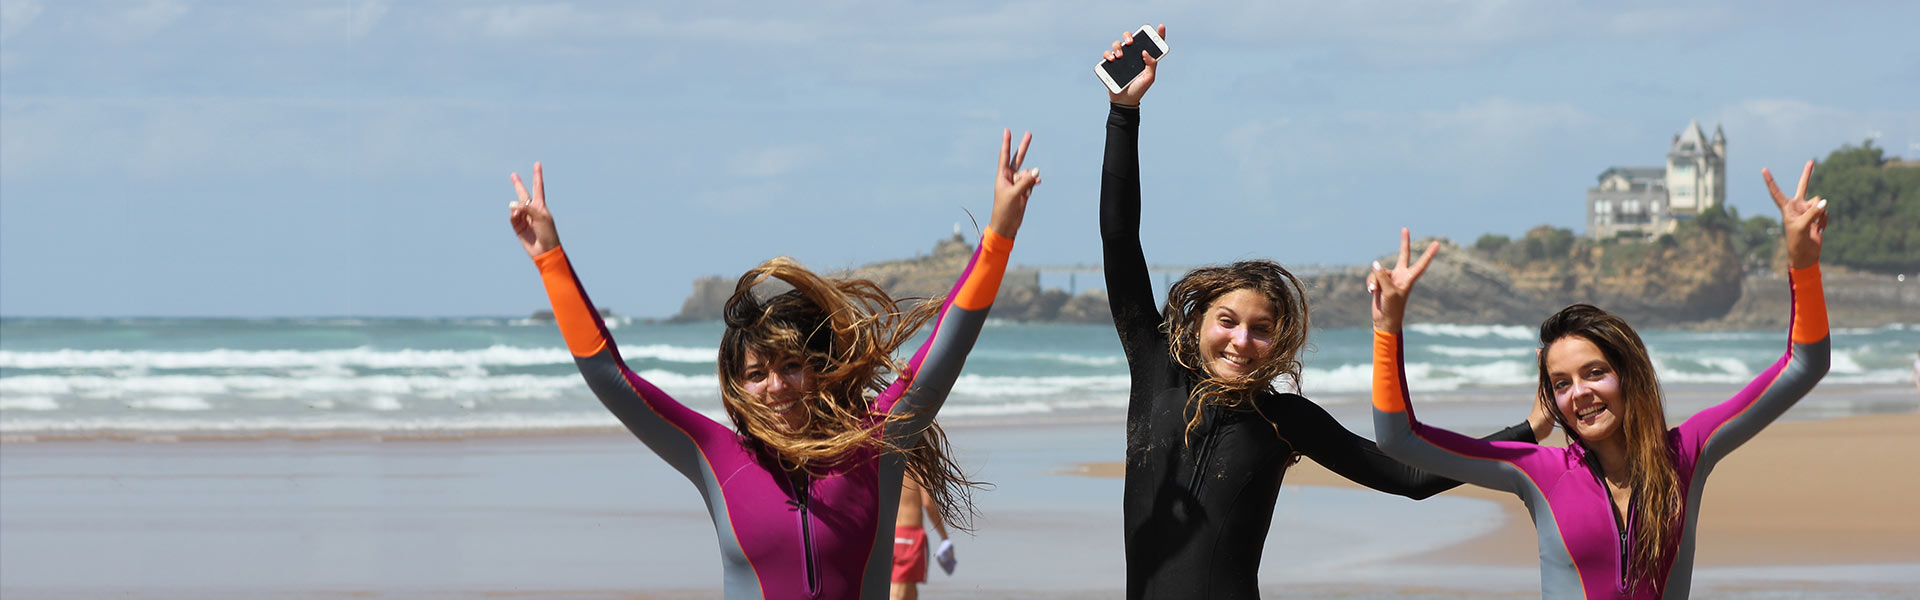 surf-camp-roxy-pays-basque-biarritz